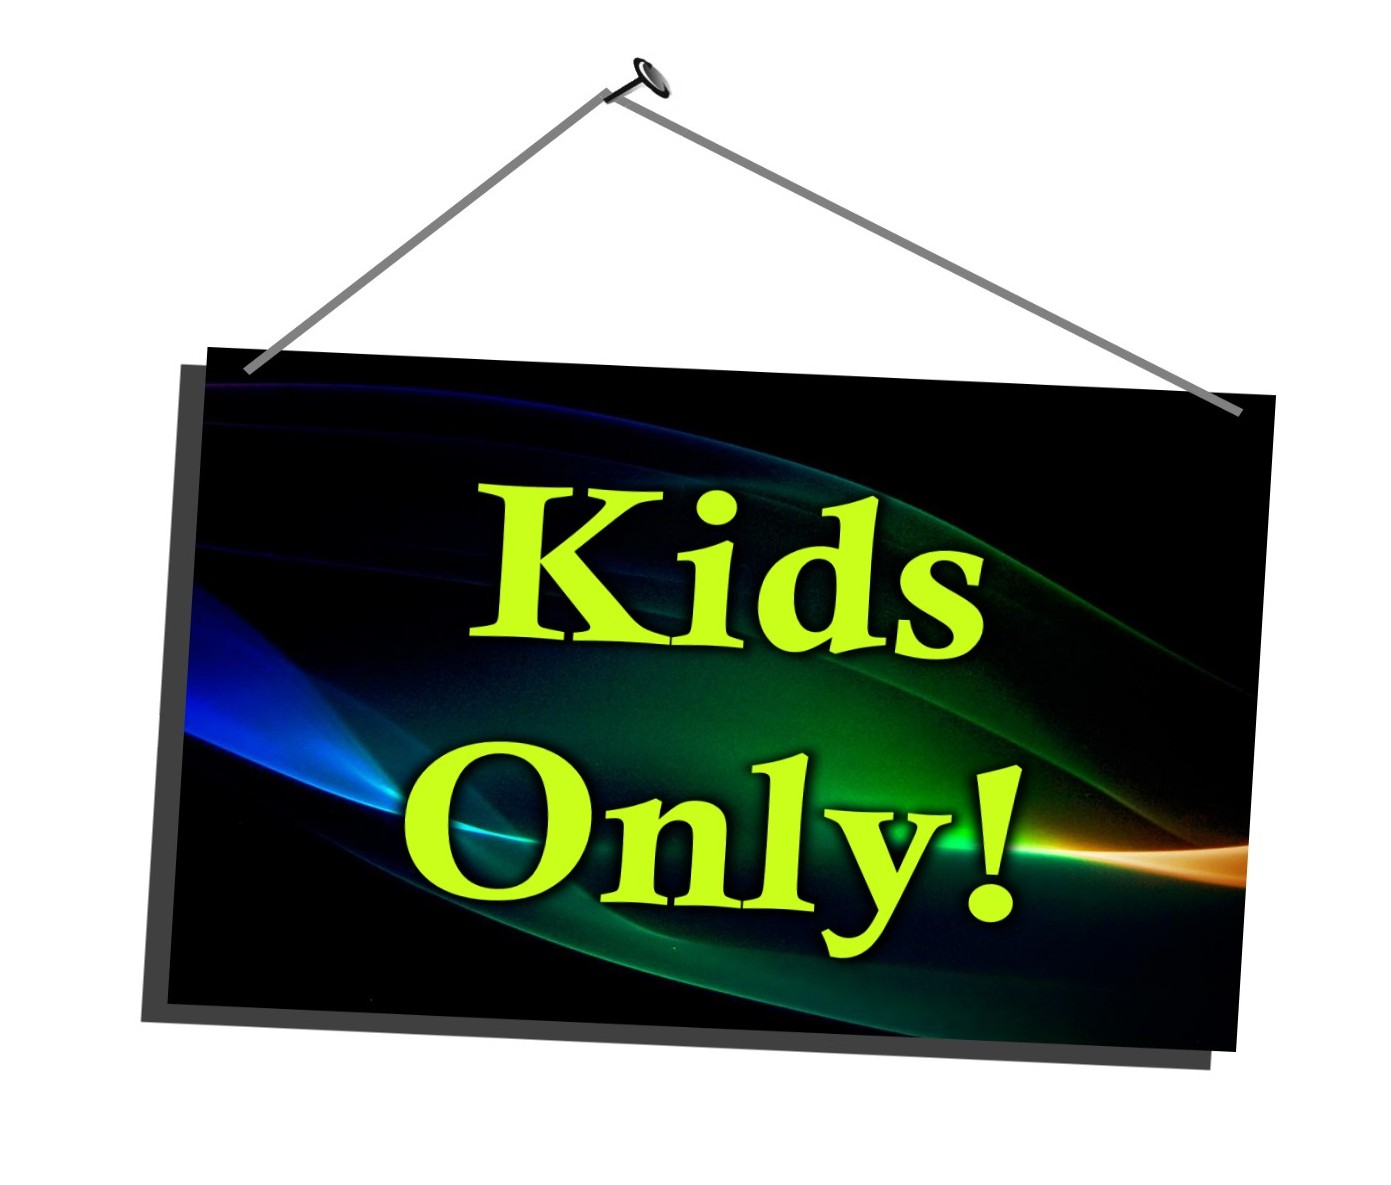 Kids Only!